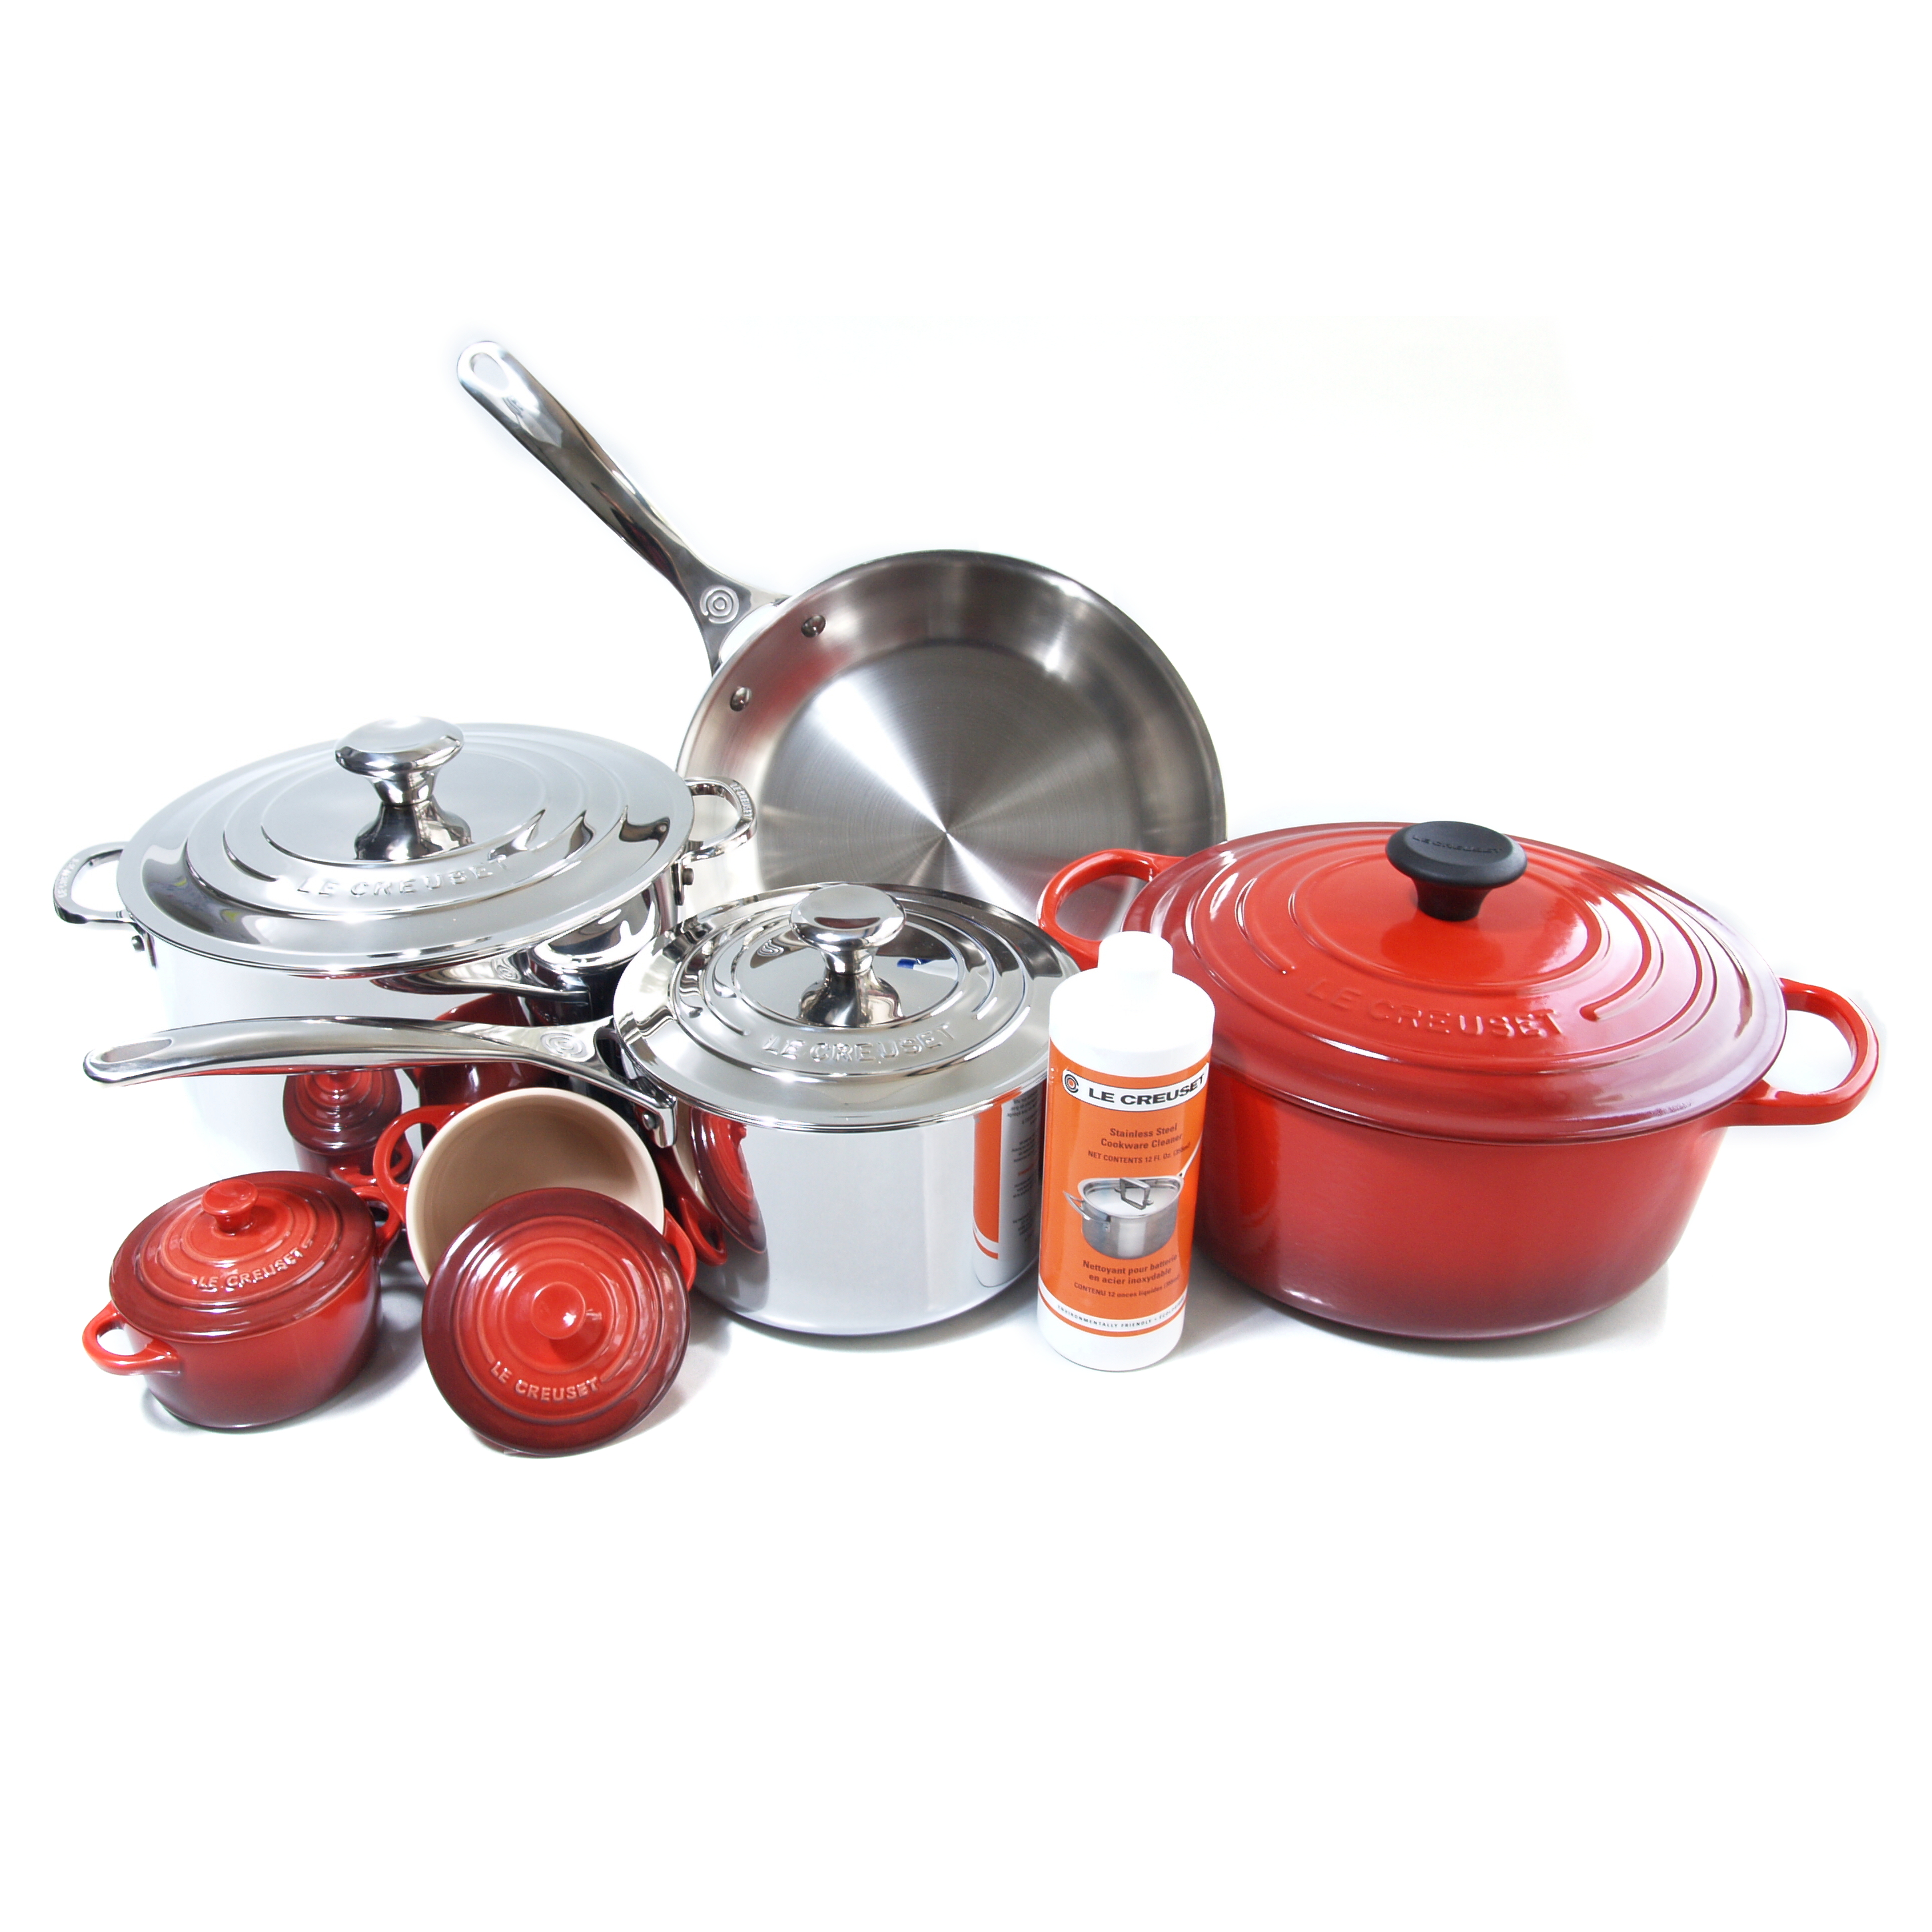 Le Creuset 11 Piece Cherry Enameled Cast Iron & Tri-Ply Stainless Steel Cookware Set